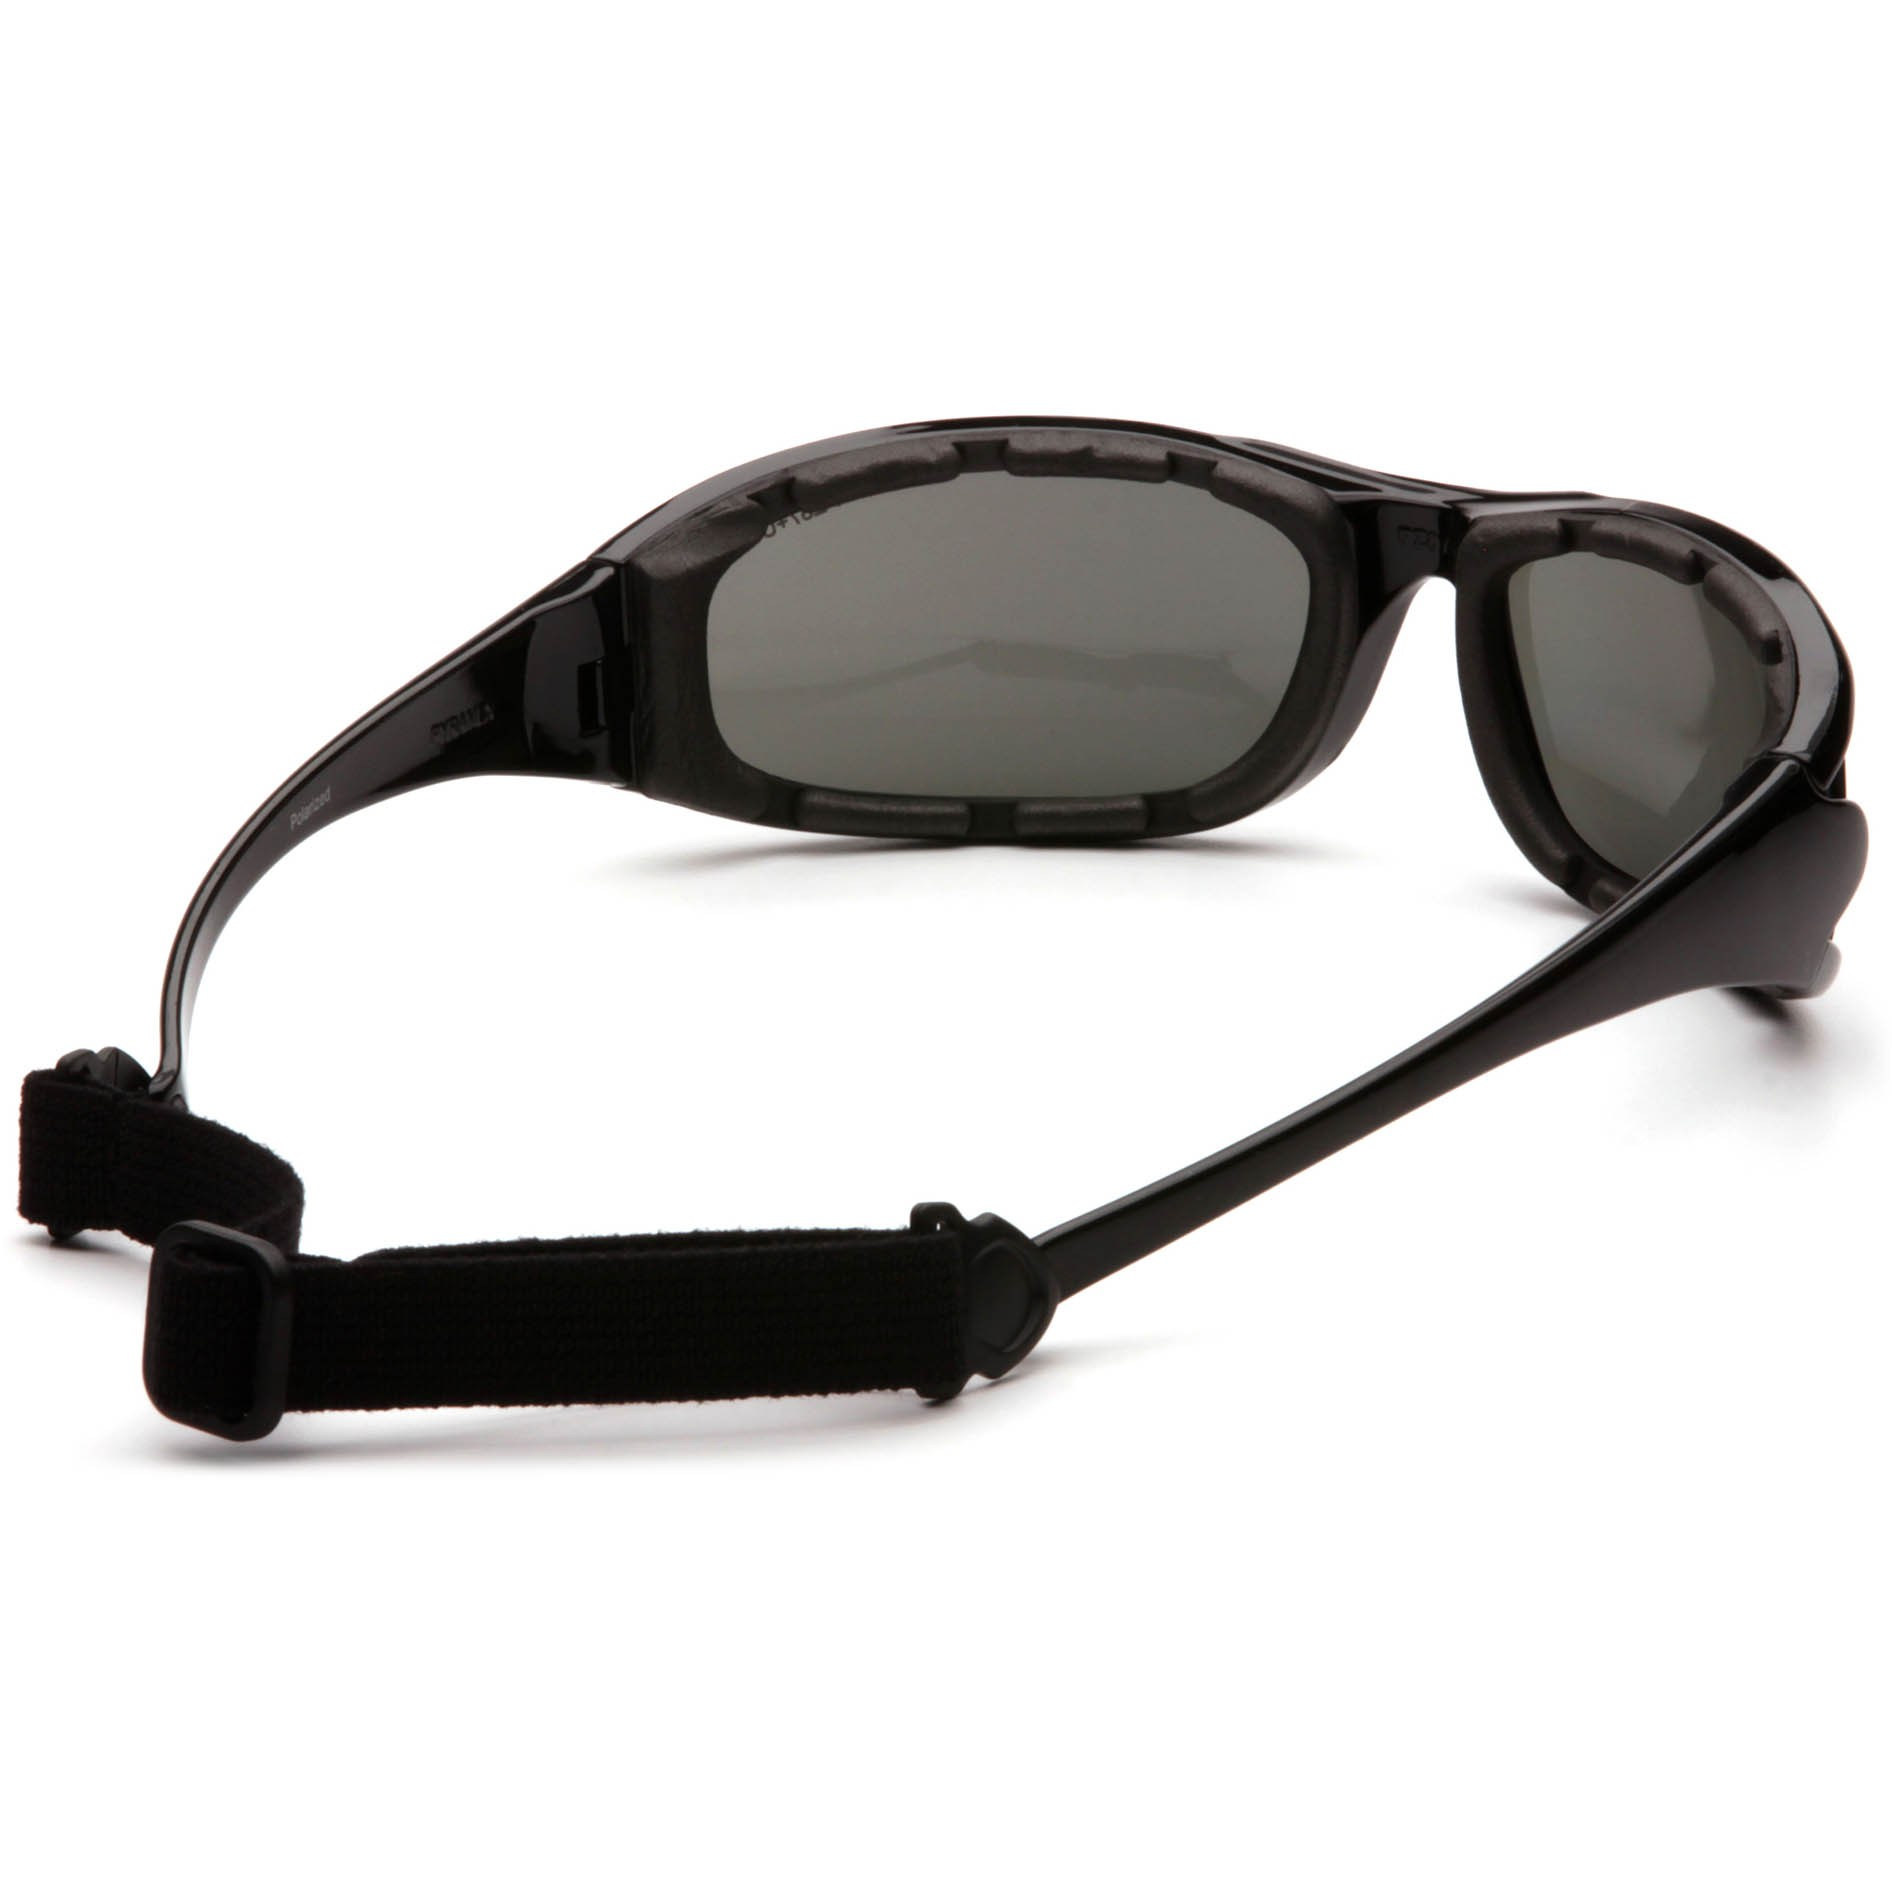 32d904f90be Pyramex PMXCEL Safety Glasses - Black Foam Lined Frame - Gray Polarized  Anti-Fog Lens